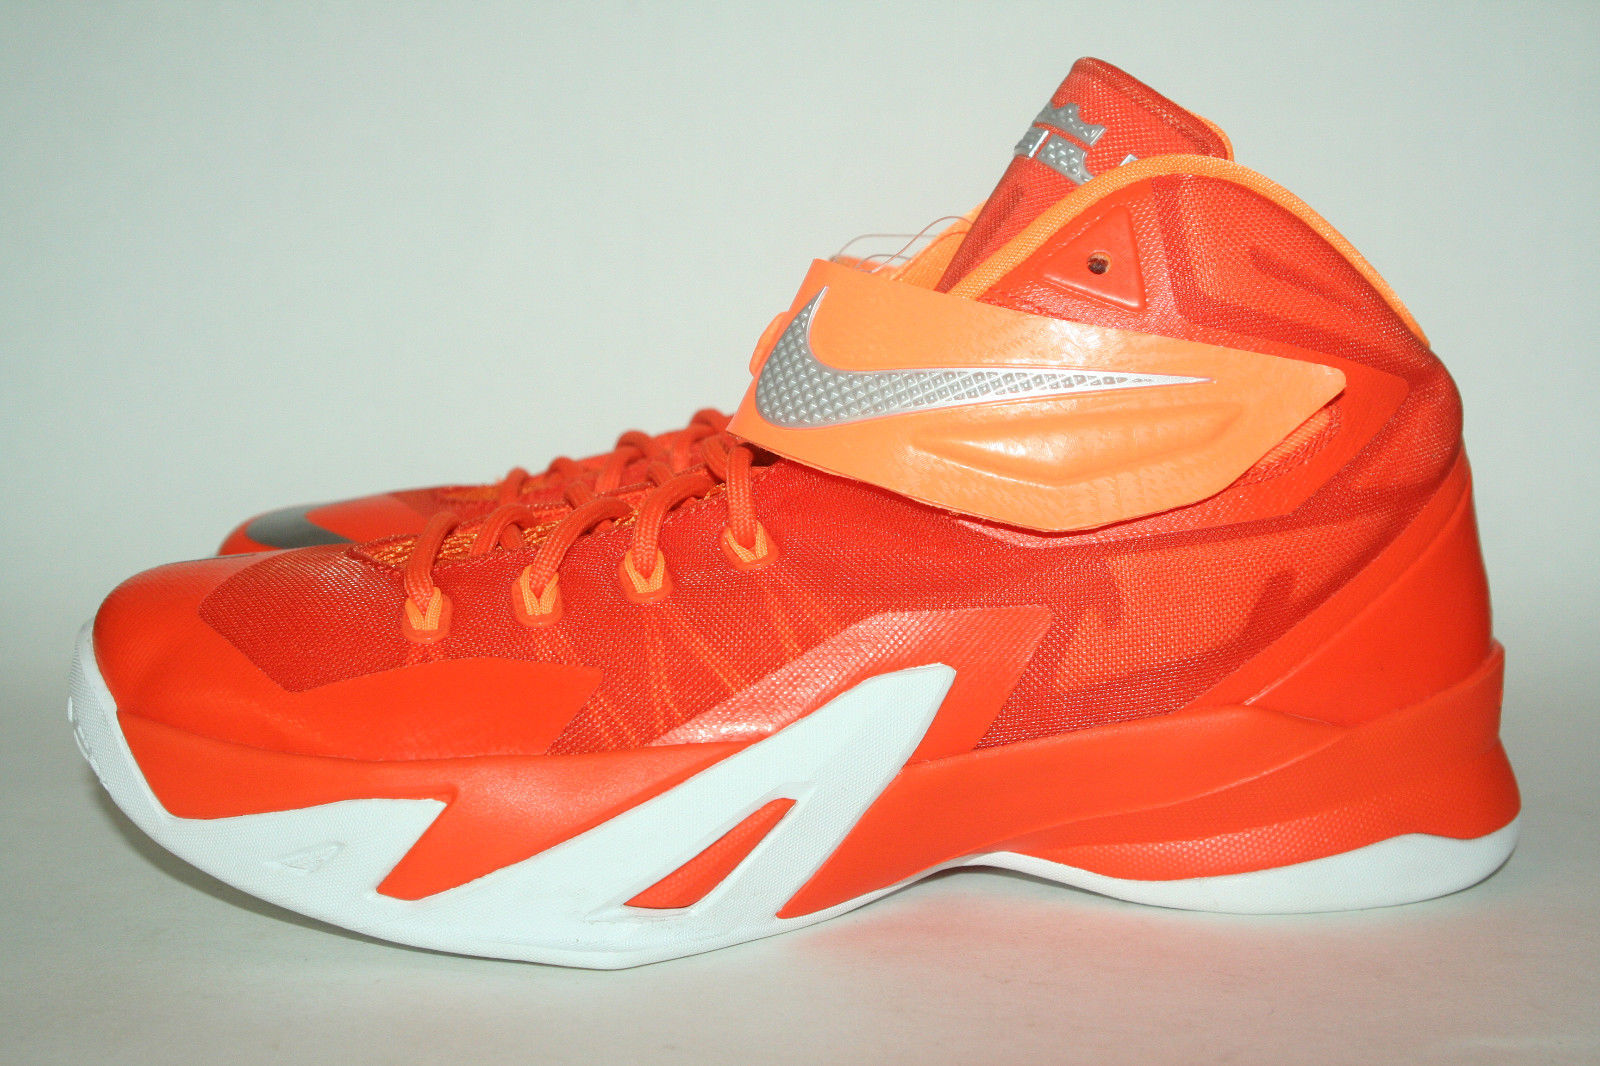 Nike Zoom Soldier 8 'Fire and Ice' Samples